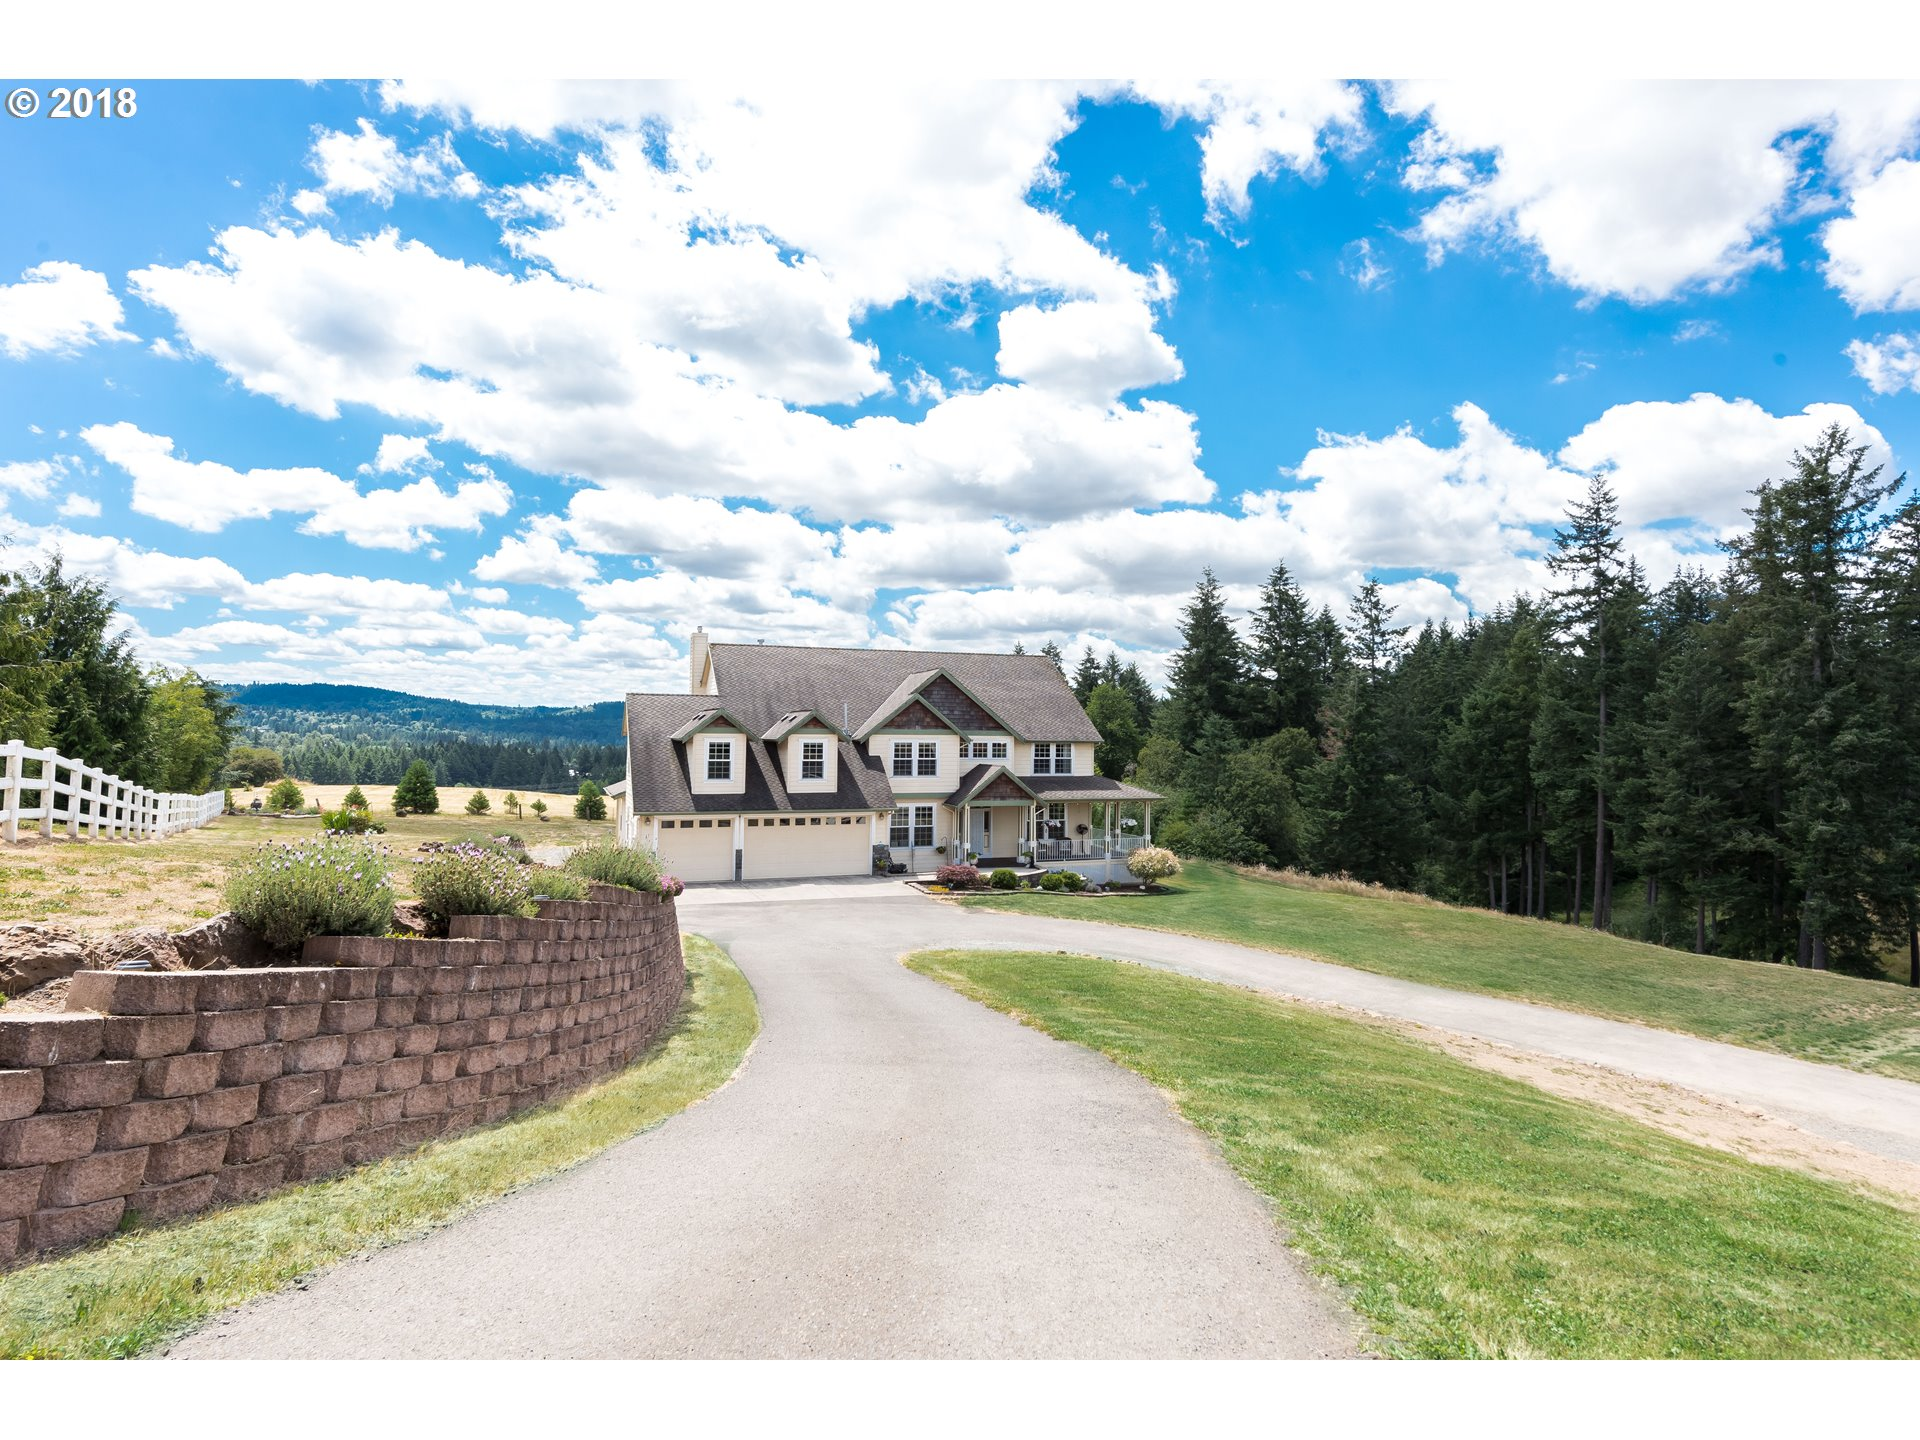 Country living only 7 minutes from I205! Exquisite traditional home w/ charming wrap around porch. Phenomenal views from every window. Kitchen with stainless & walk in pantry. Wine cellar,central vac,great room,above ground pool,3 car xdeep garage.Bonus room upstairs for playing inside, 1.9 acres for playing outside!18x36' freestanding shop with custom shelving, heating and 220 power. Pool can be removed if buyer wishes. Hm warranty inc